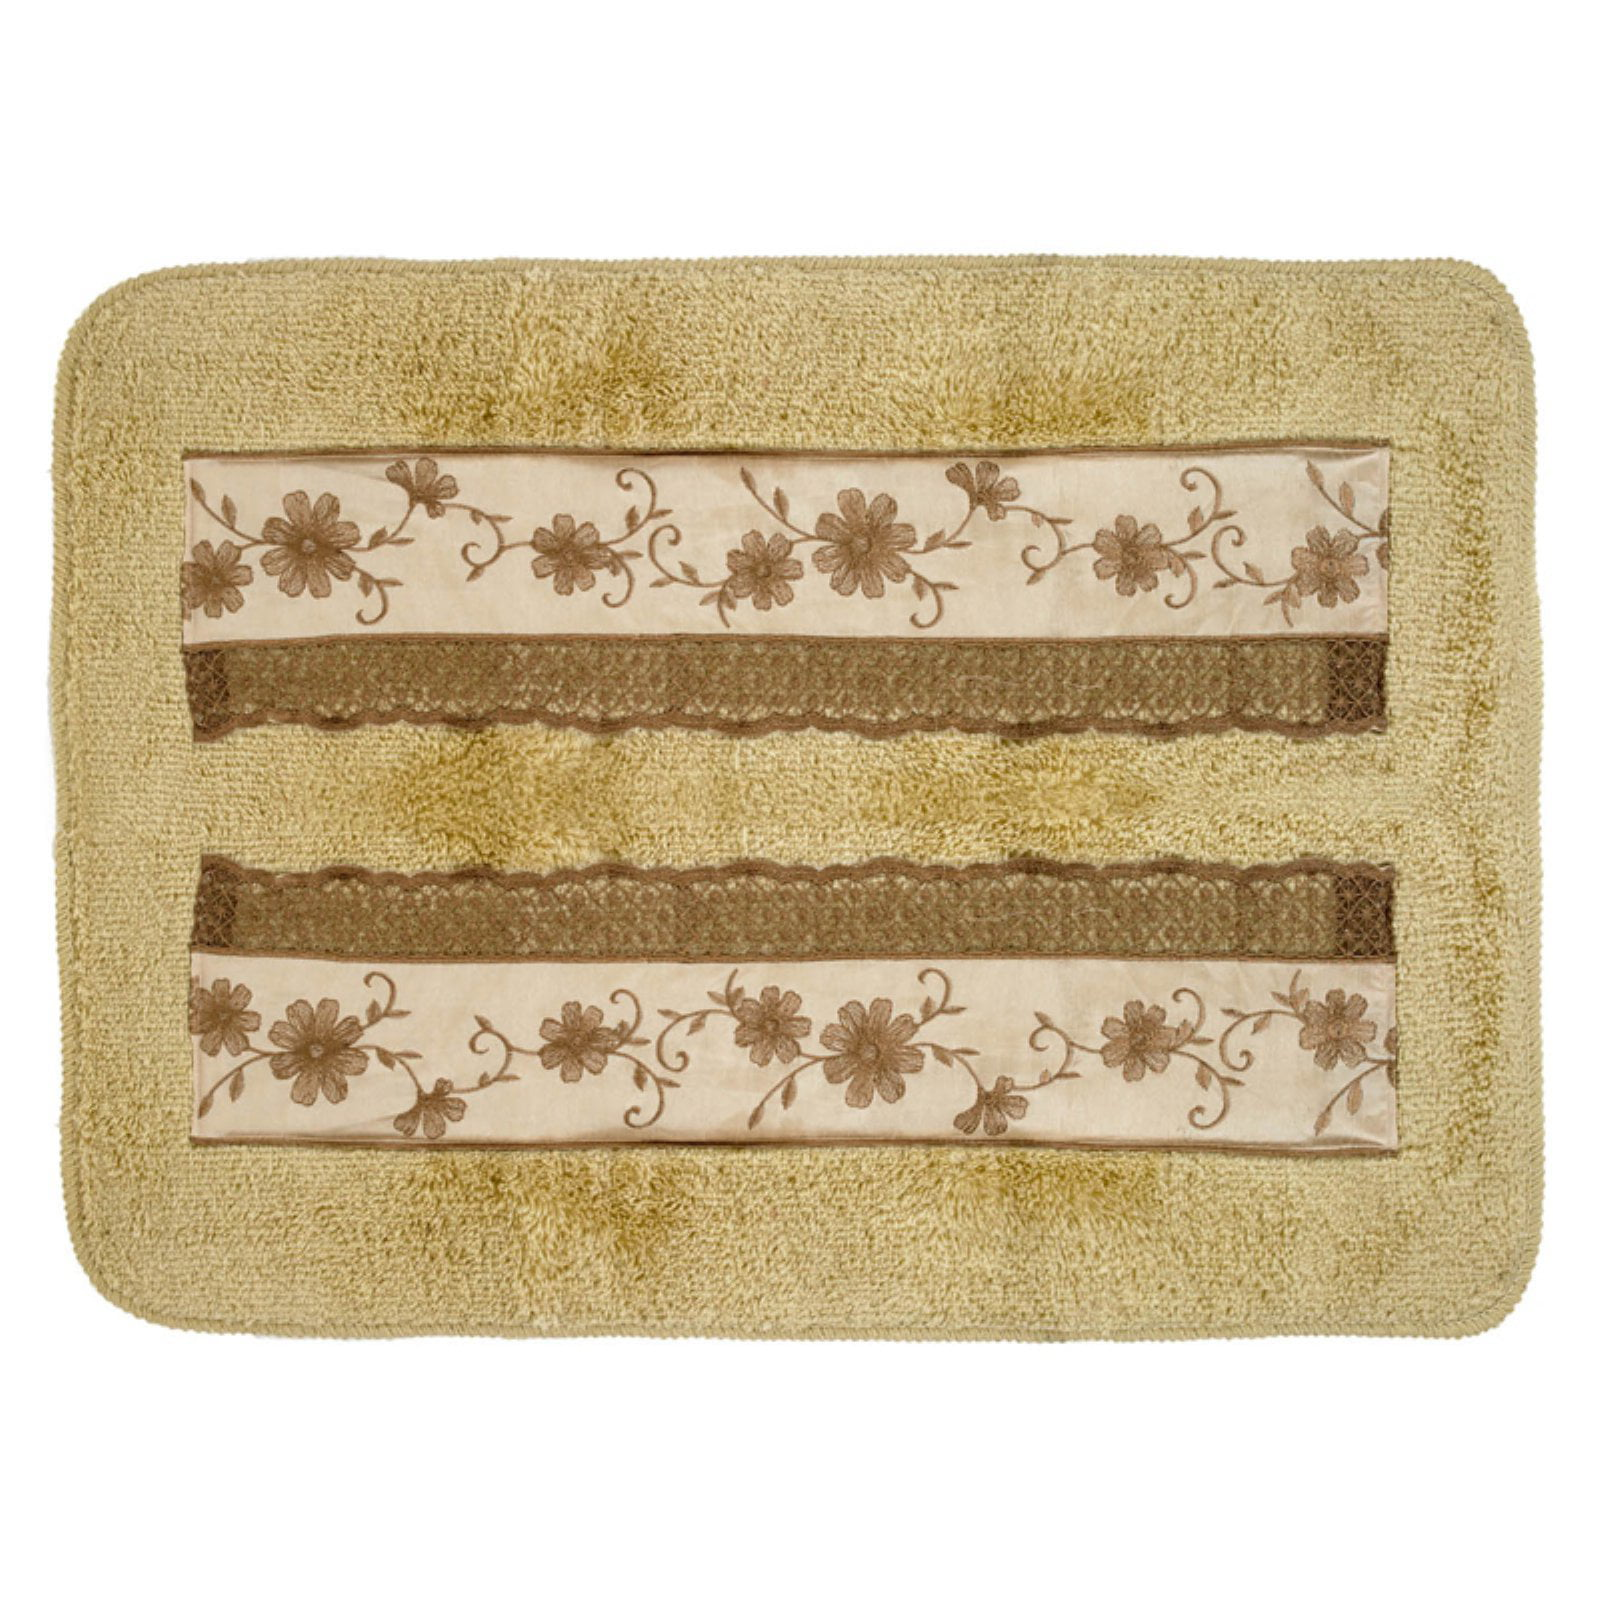 Sweet Home Collection Veronica Banded Bathroom Rug by Popular Bath Products